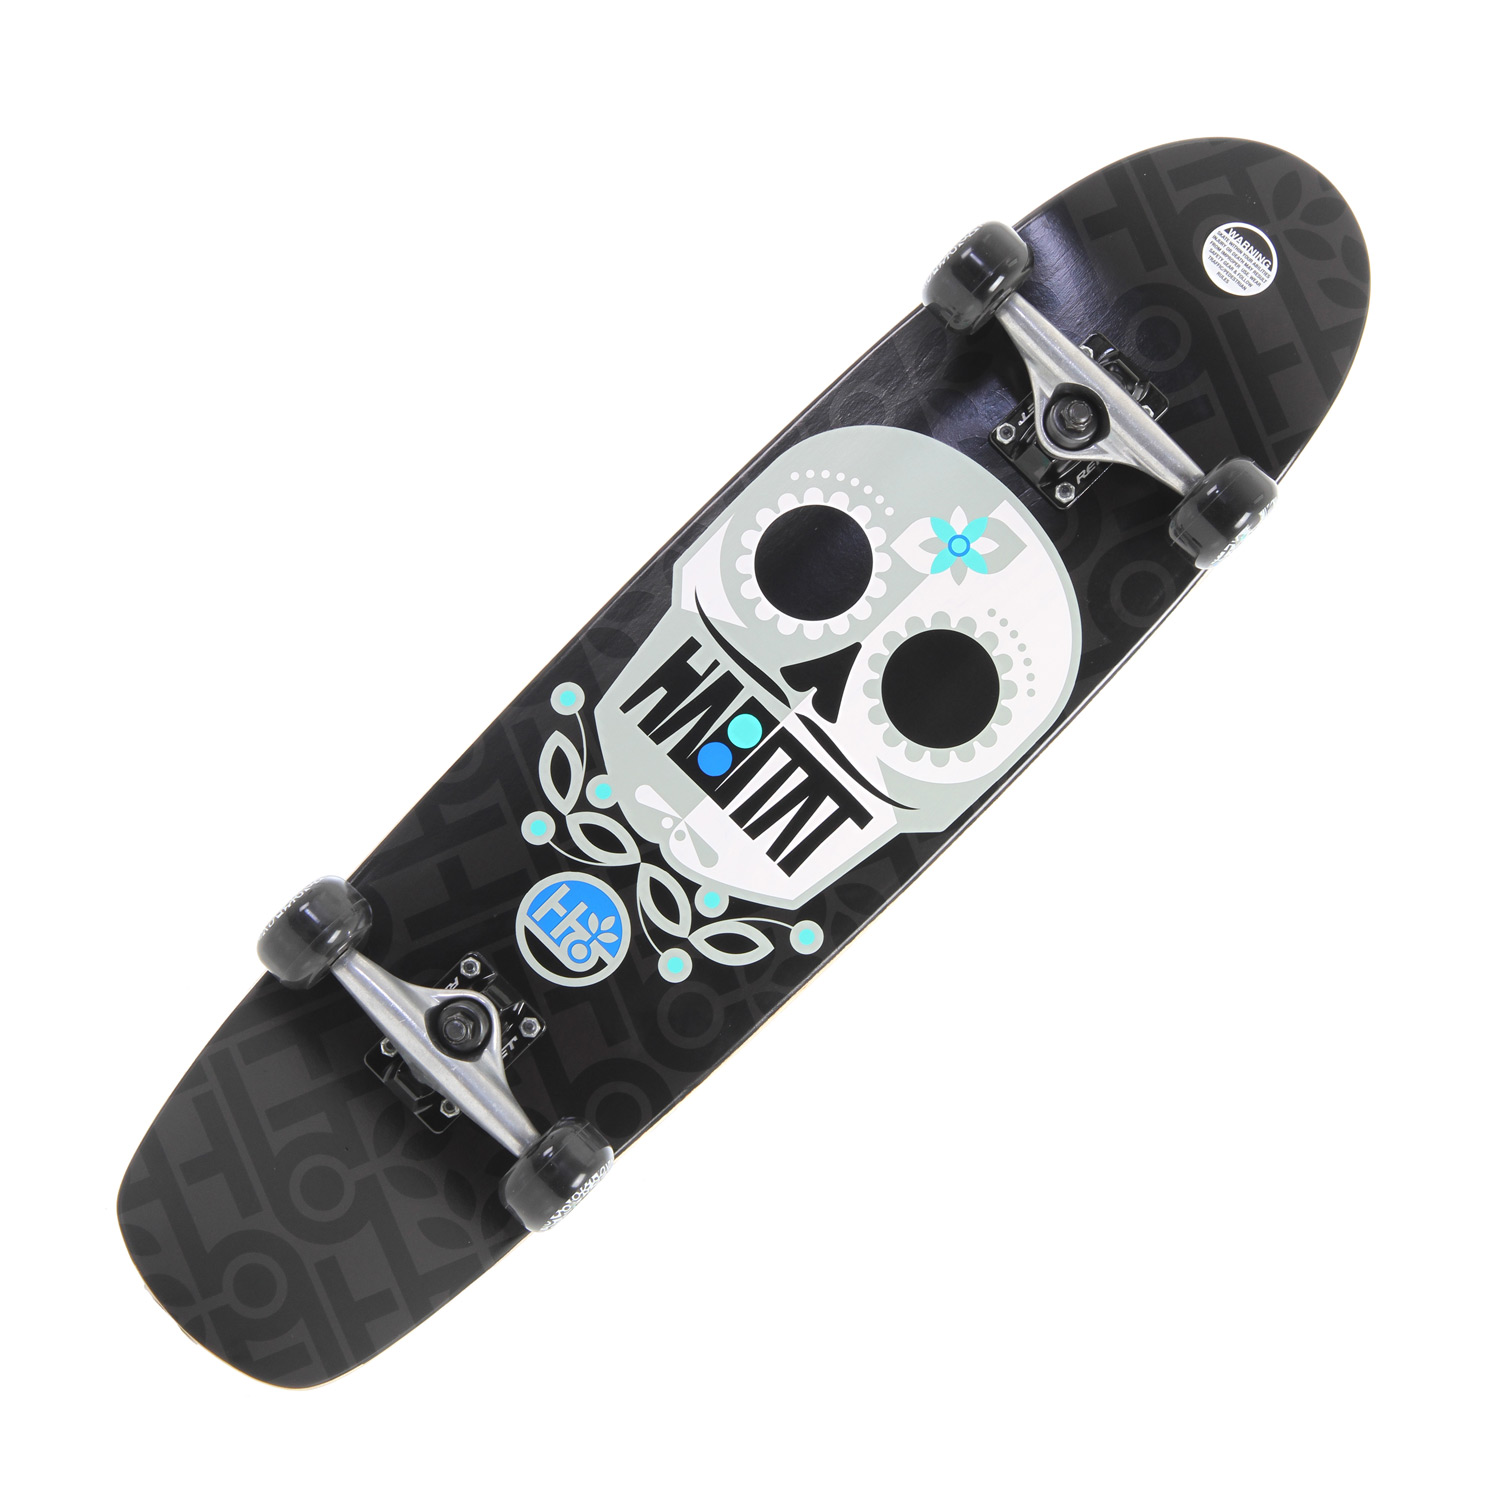 Skateboard Purple AND a Sugar skull? These won't last long. Key Features of the Habitat Angel Sugar Skull Large Longboard Skateboard Complete: Reflex Abec 3 Bearings Reflex Hornet Trucks 56mm/78A Durometer Wheels - $84.95